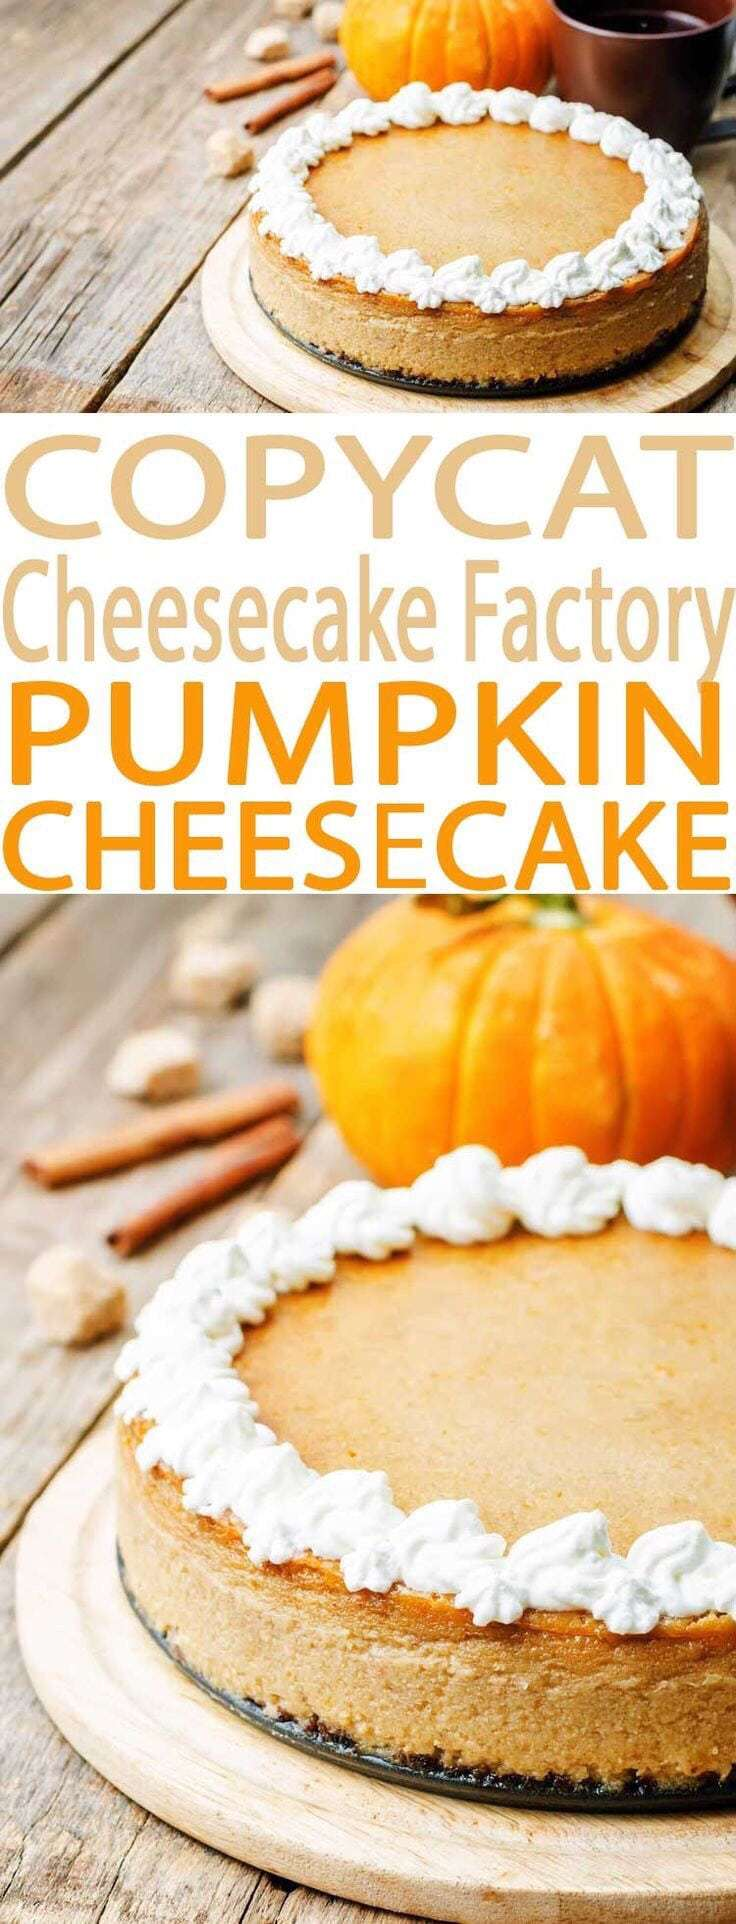 Pumpkin Spice Recipes: Copycat Cheesecake Factory Pumpkin Cheesecake